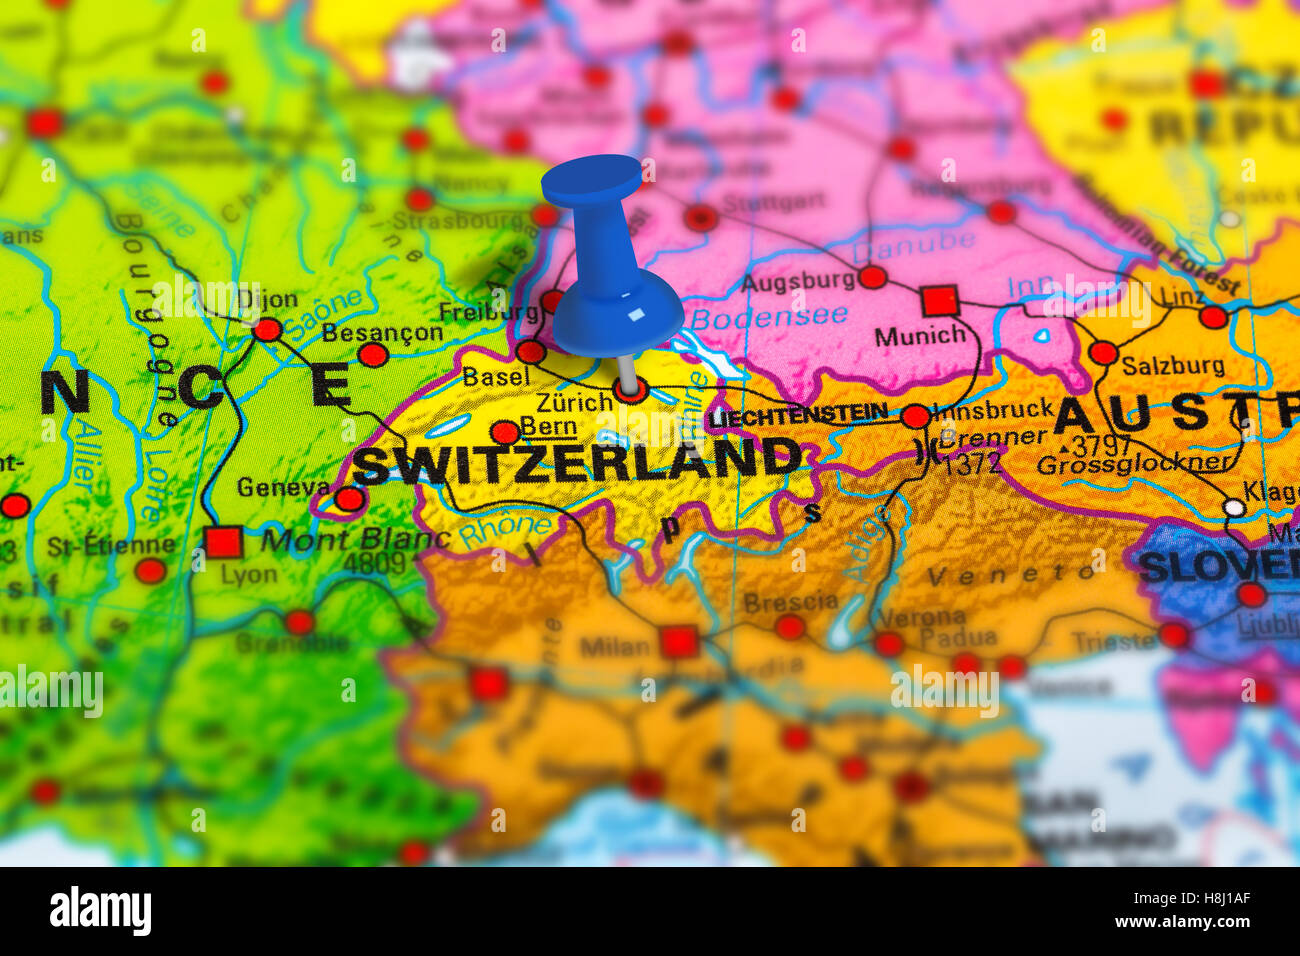 Zurich switzerland map stock photo 125786039 alamy zurich switzerland map gumiabroncs Gallery